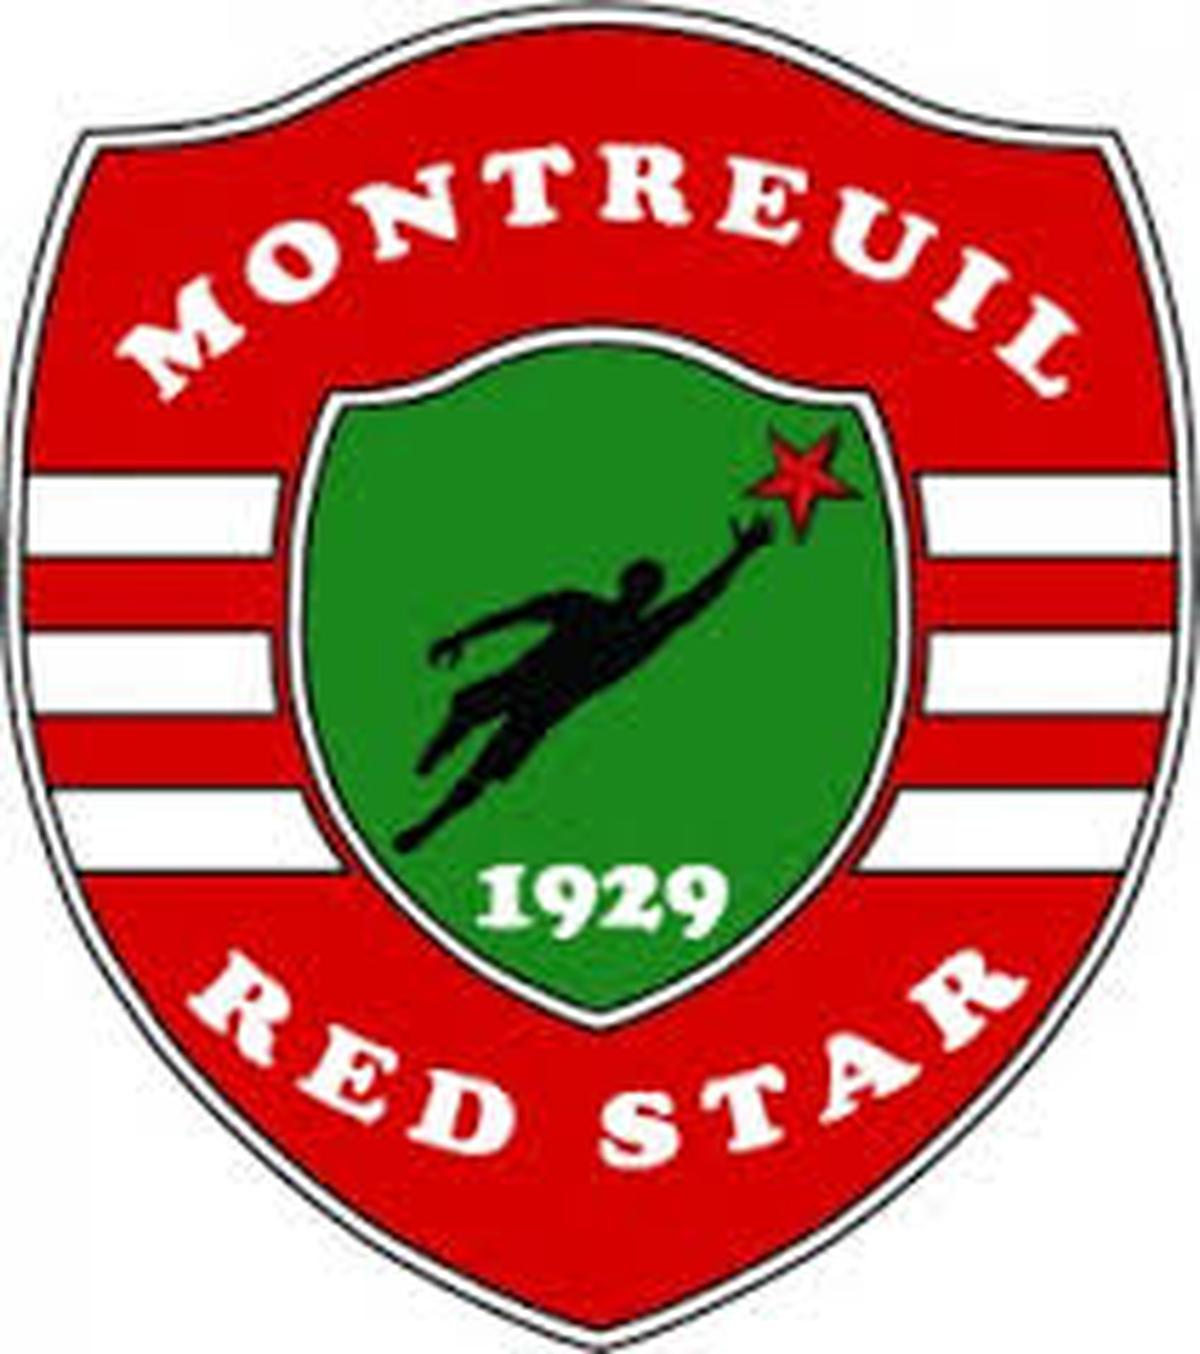 RED STAR MONTREUIL